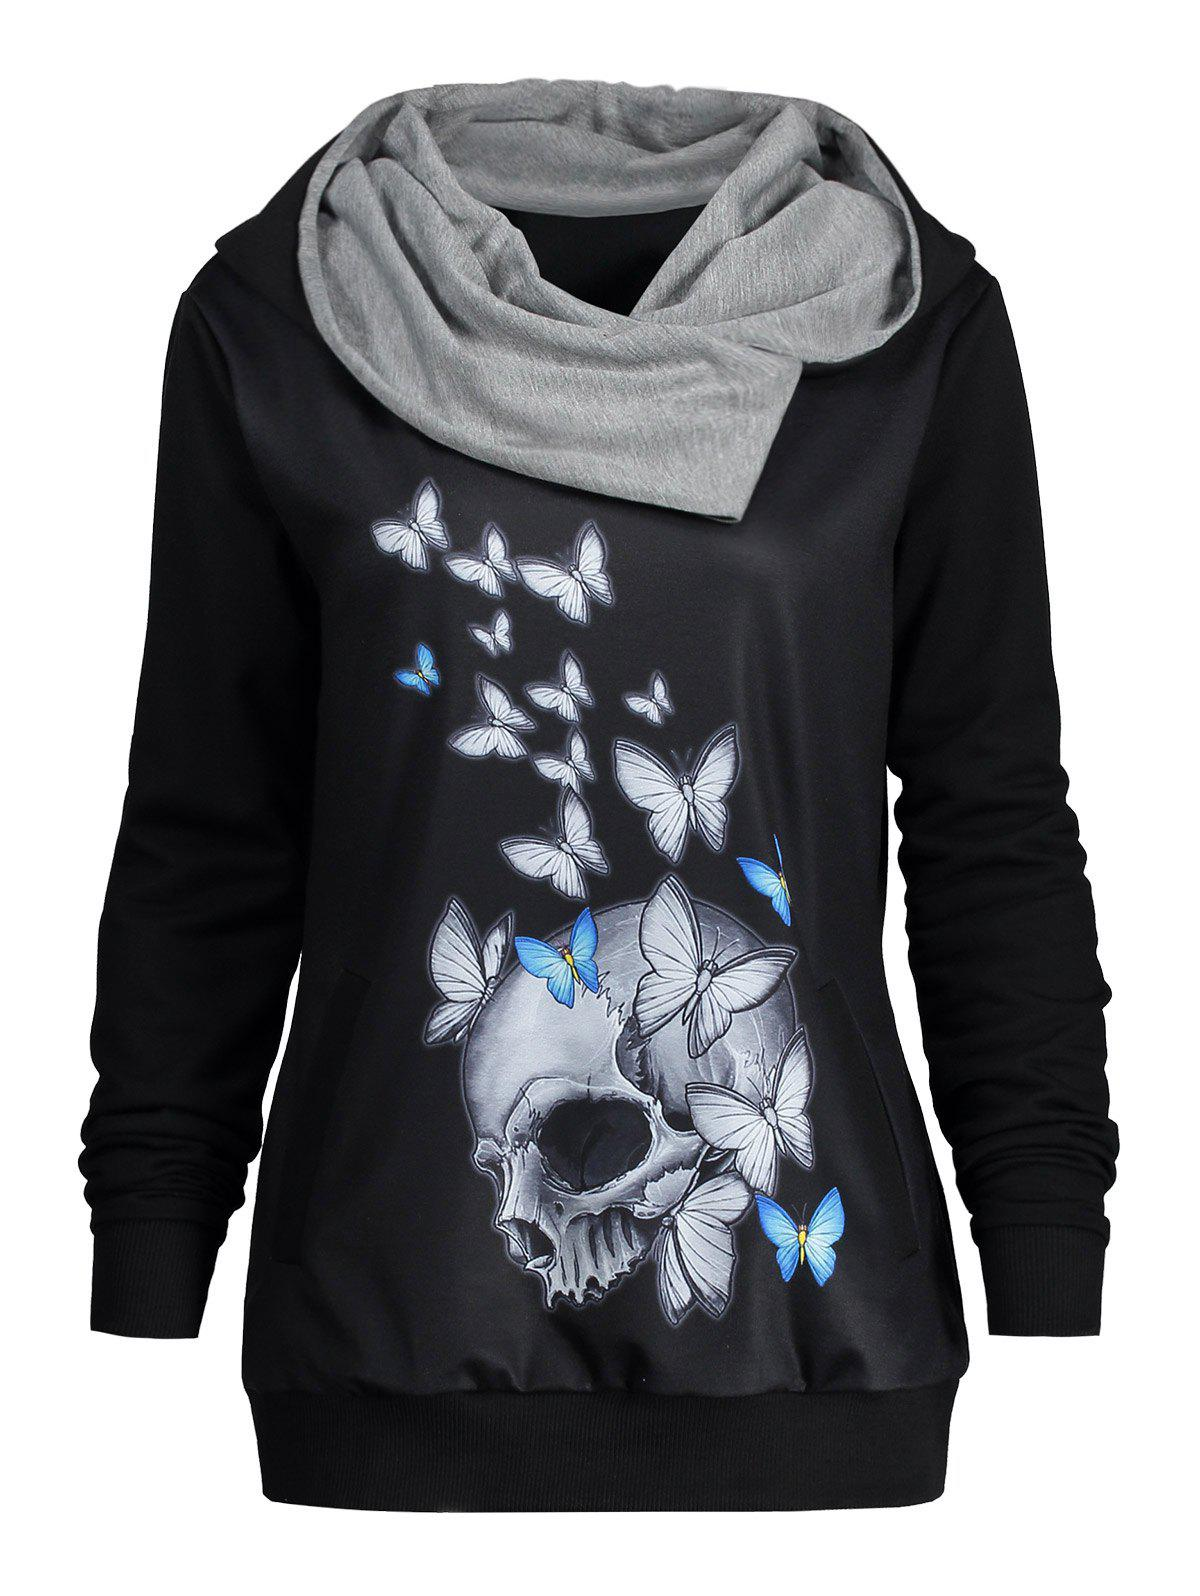 Halloween Butterfly Skull Print Heaps Collar HoodieWOMEN<br><br>Size: XL; Color: BLACK; Material: Polyester; Shirt Length: Regular; Sleeve Length: Full; Style: Fashion; Pattern Style: Print,Skulls; Season: Fall,Spring,Winter; Weight: 0.5700kg; Package Contents: 1 x Hoodie;